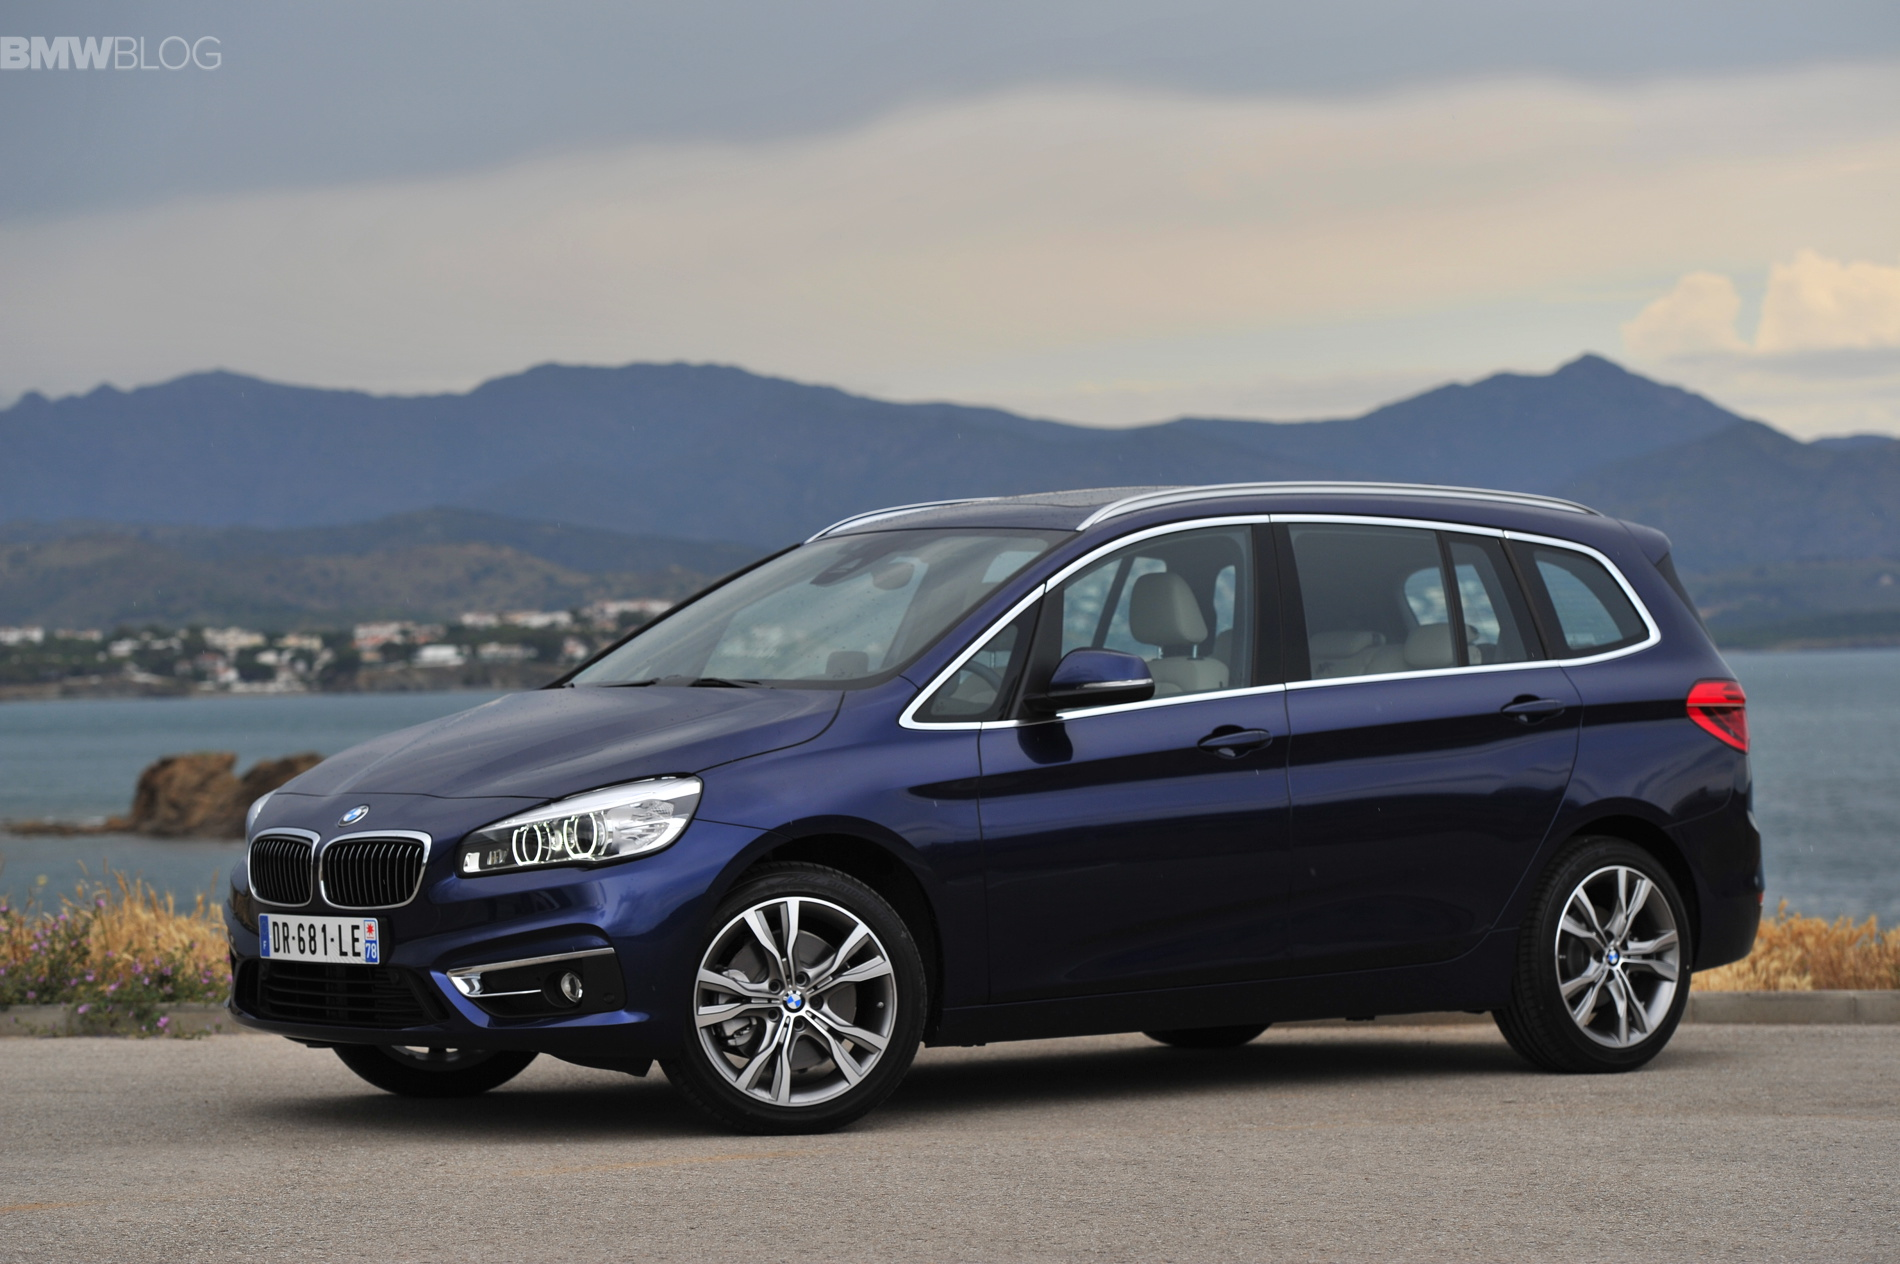 bmw 2 series gran tourer 220i 218d 220d images 19